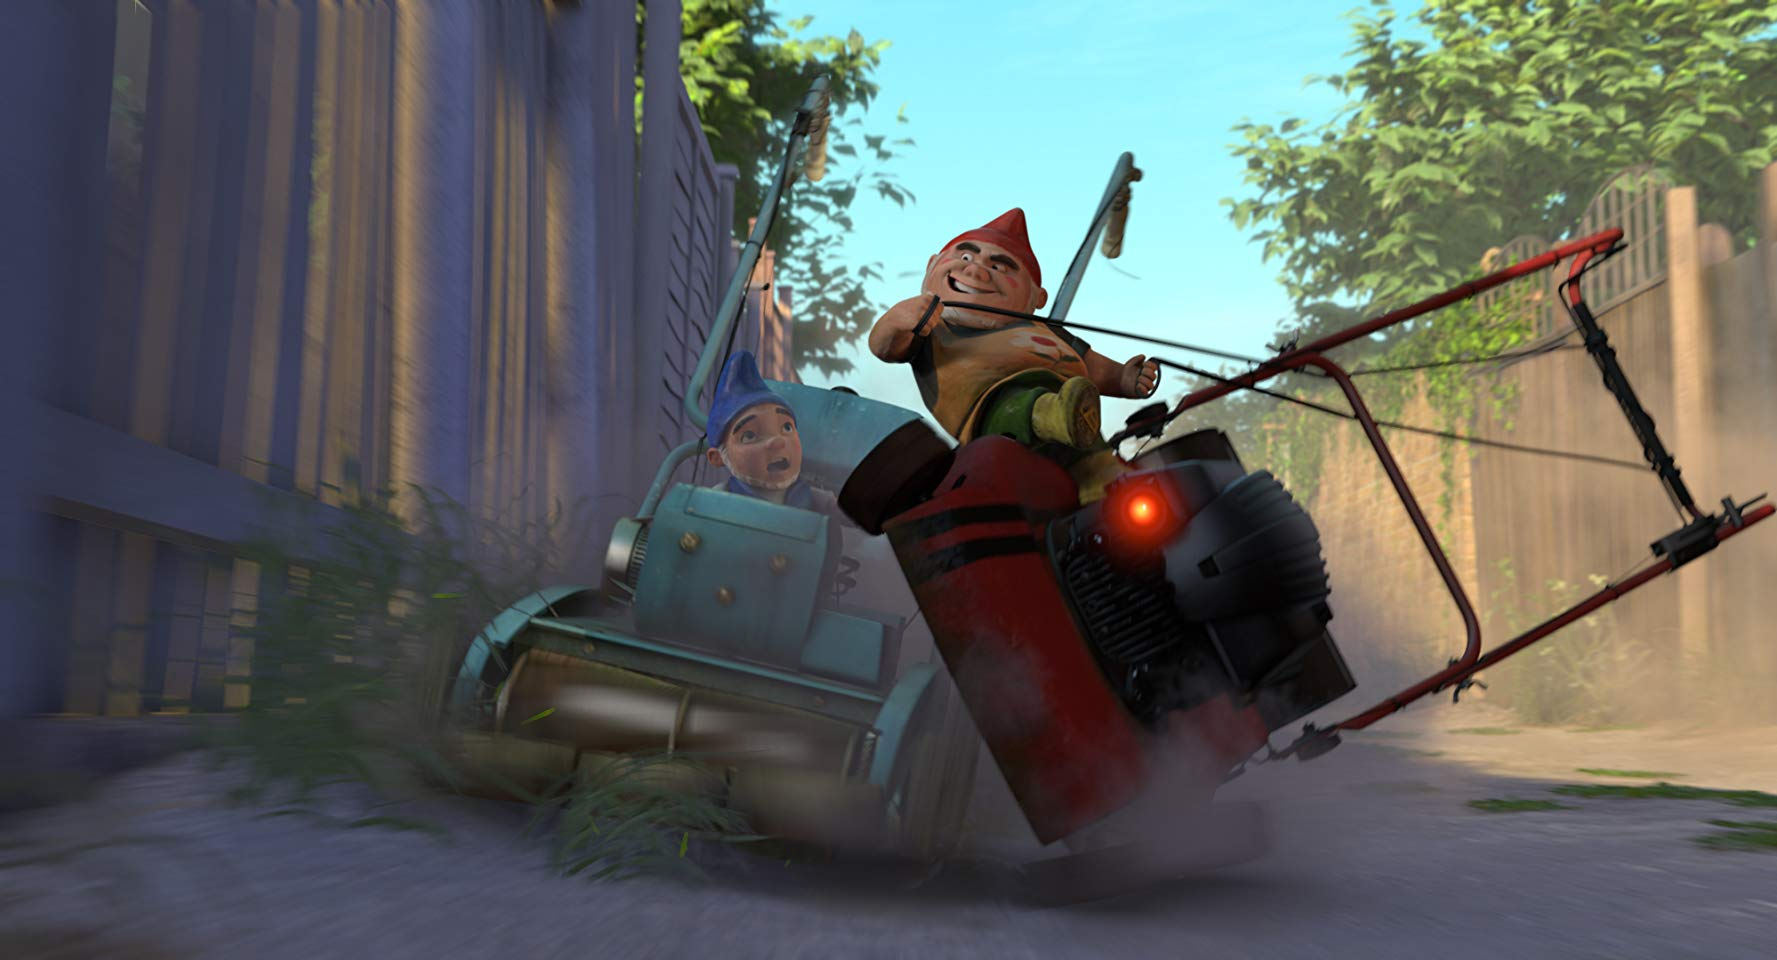 Garden gnomes in lawnmower races in Gnomeo & Juliet (2011)